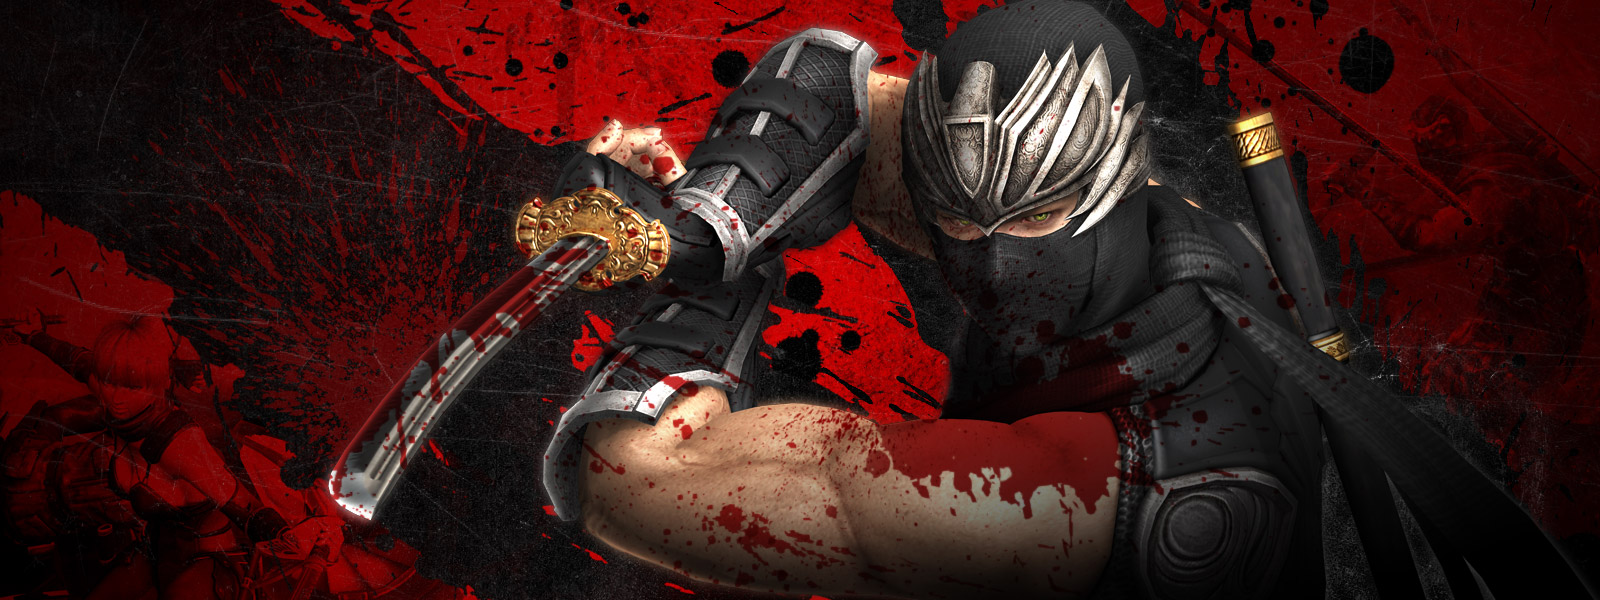 Review: Ninja Gaiden 3 Razor&#8217;s Edge (PS3)